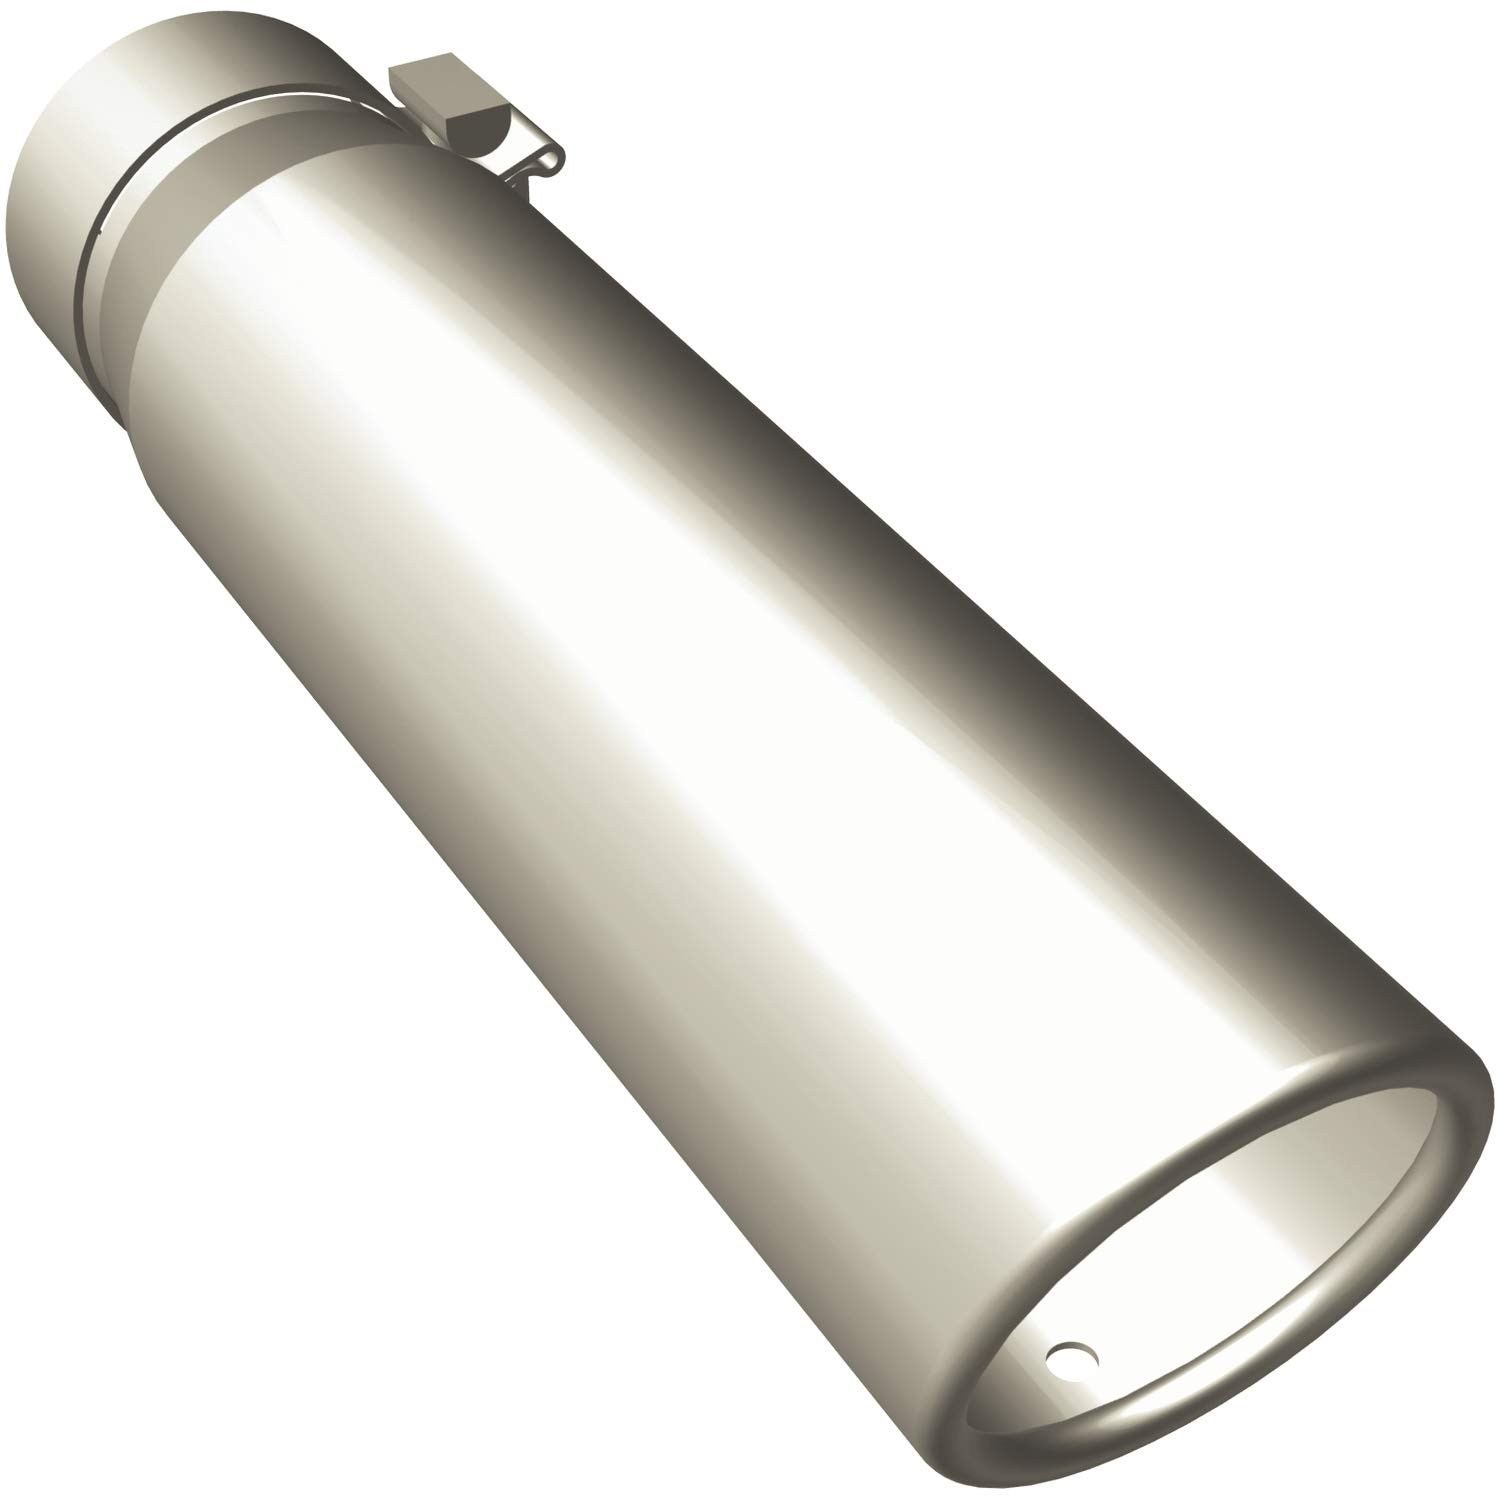 Magnaflow 35208 Stainless Steel 2.5 Exhaust Tip MagnaFlow Exhaust Products